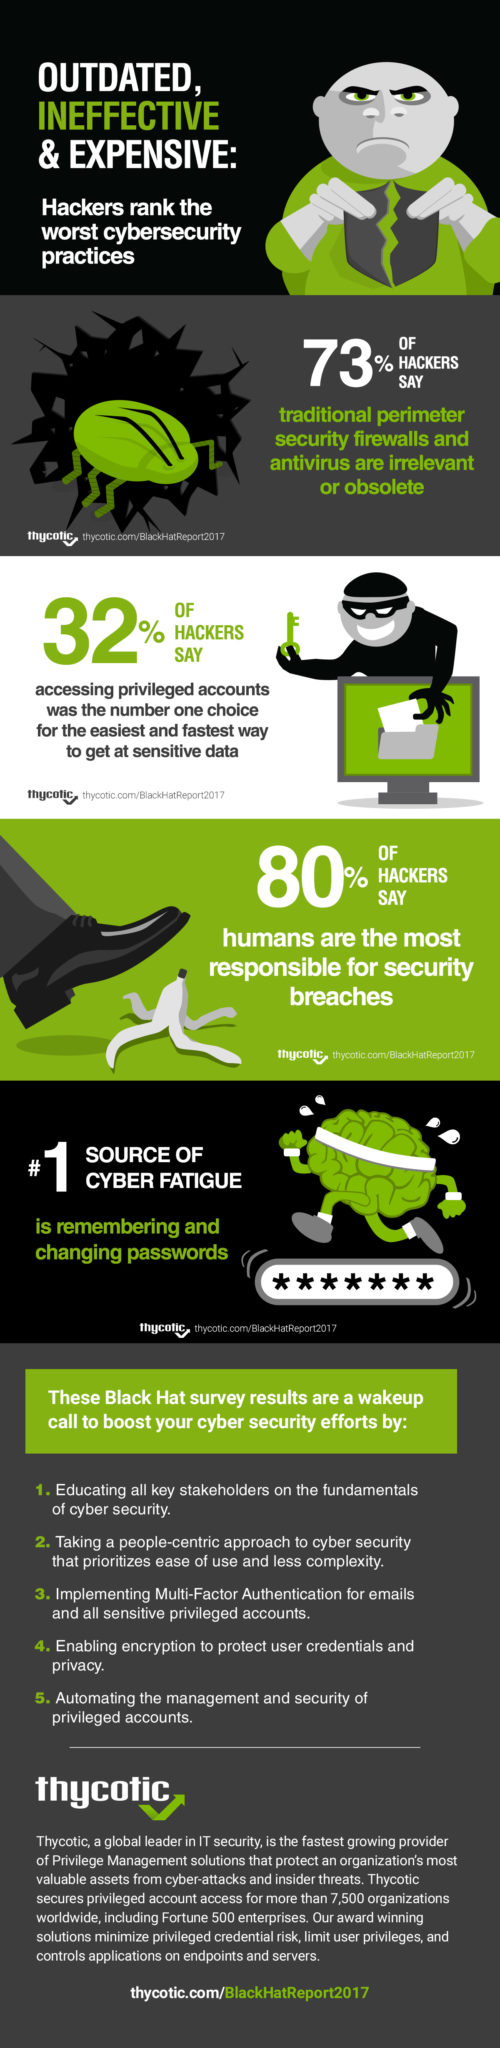 Infographic: Thycotic's Black Hat 2017 Hacker Survey Results and Figures